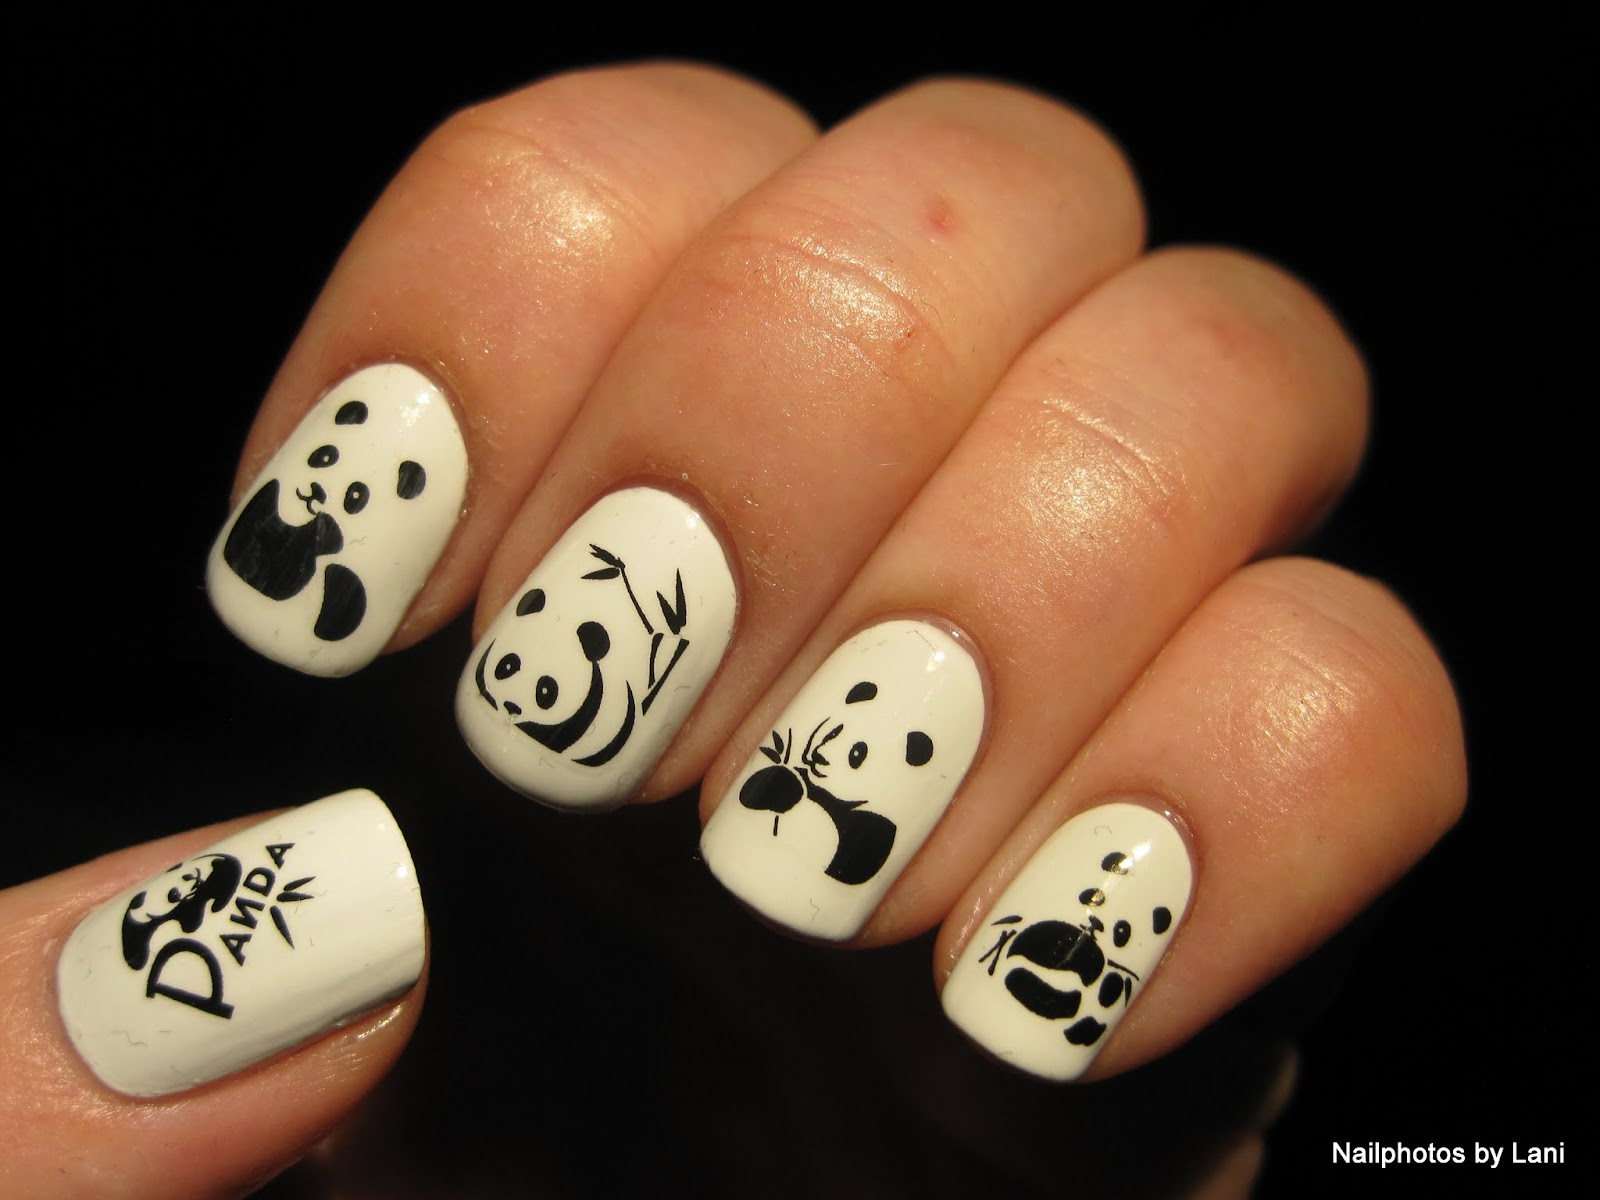 Nailphotos by lani giant panda and giant panda cub water decals giant panda eating bamboo water decals prinsesfo Image collections